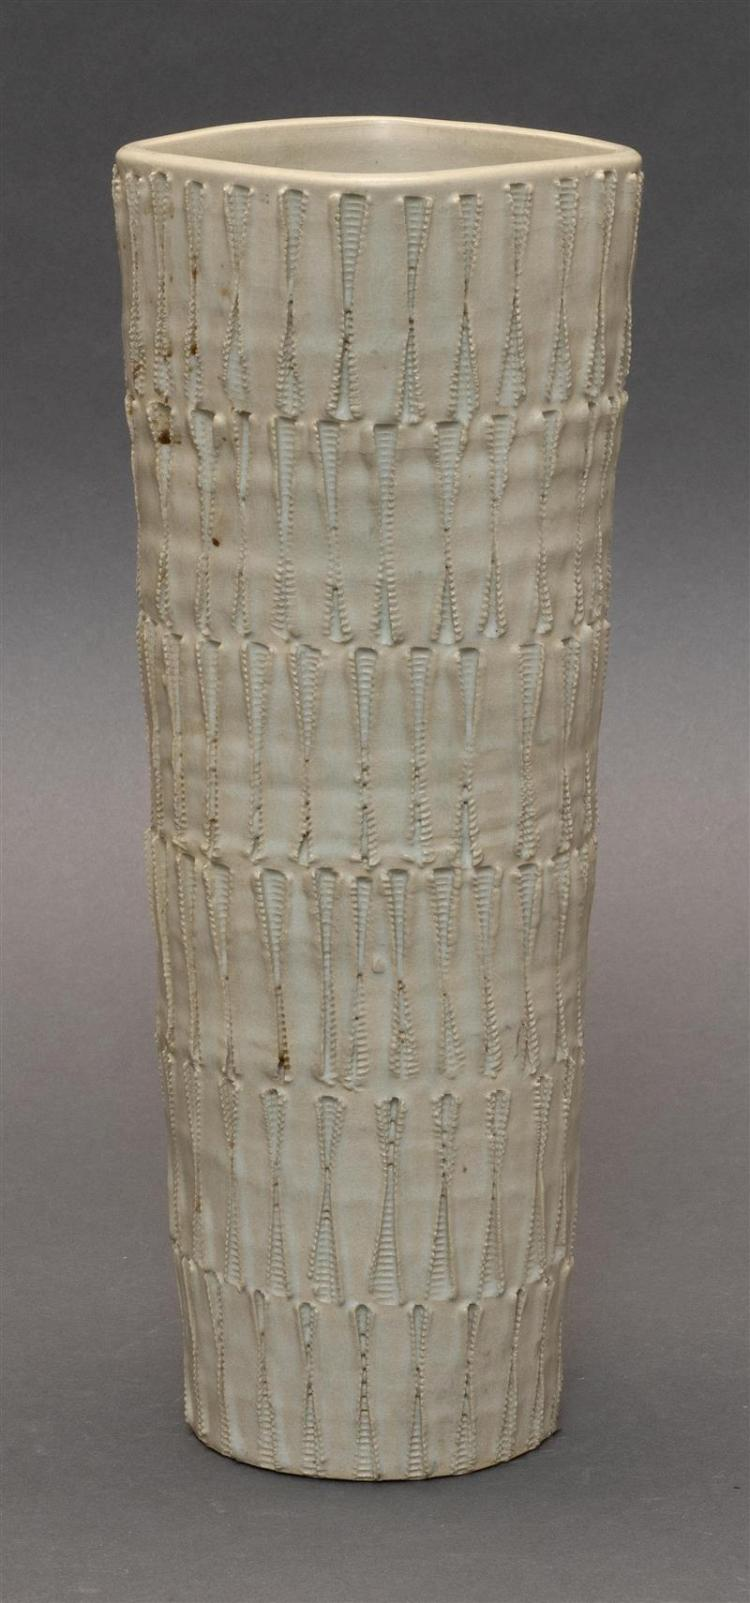 STUDIO POTTERY VASE In cylinder form with banded design of six series of leaf-like elements. Sosho signature on base. Height 12